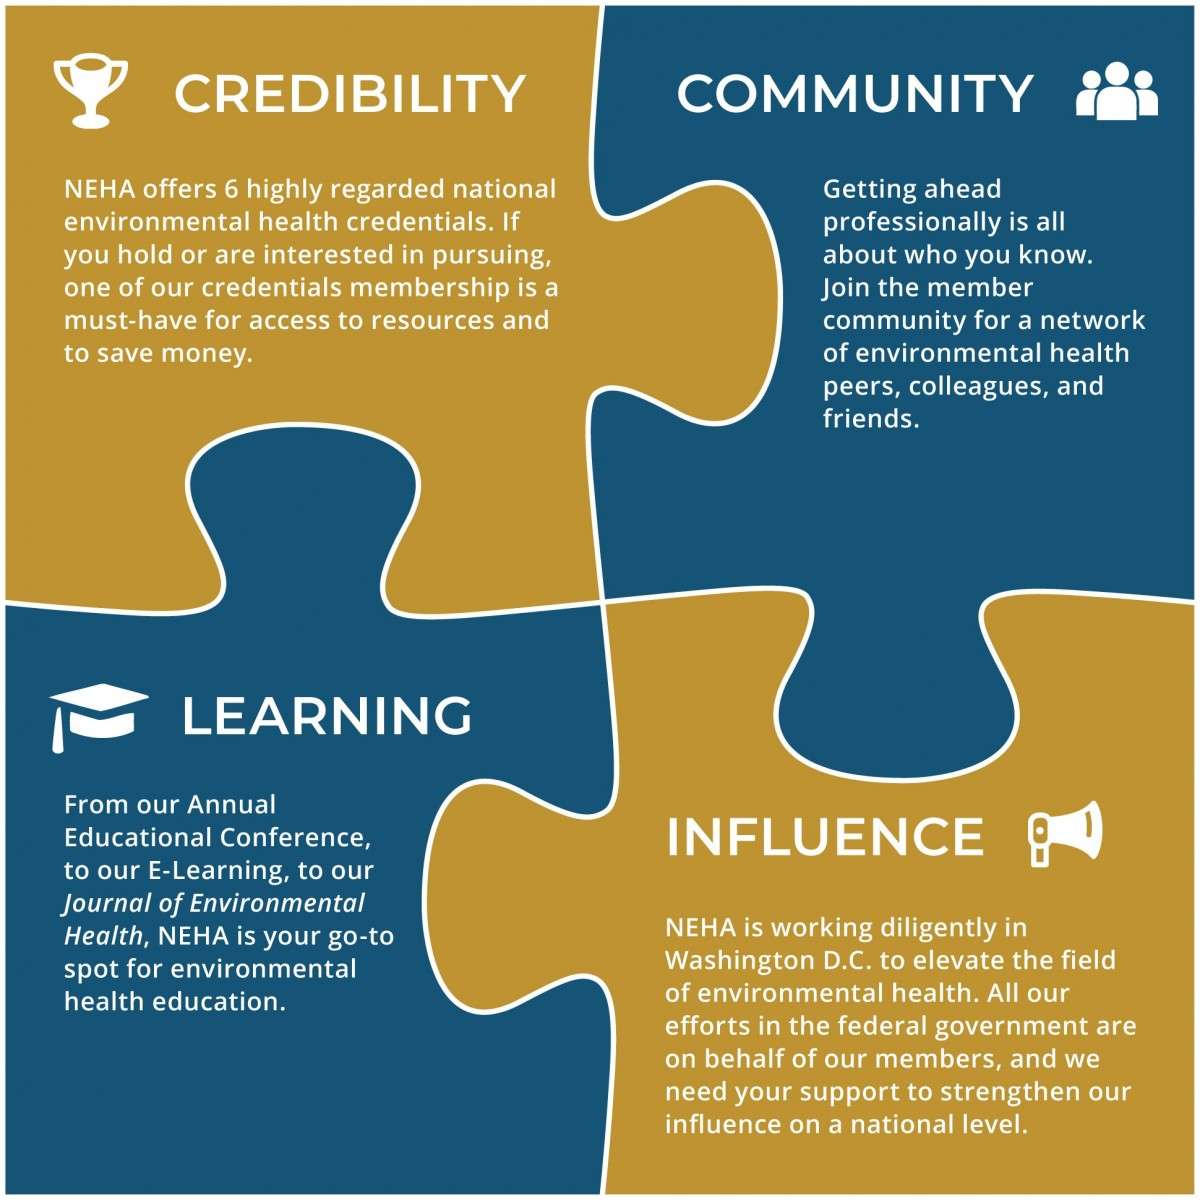 puzzle pieces that are titled credibility, community, learning, and influence, showcasing NEHA's offerings